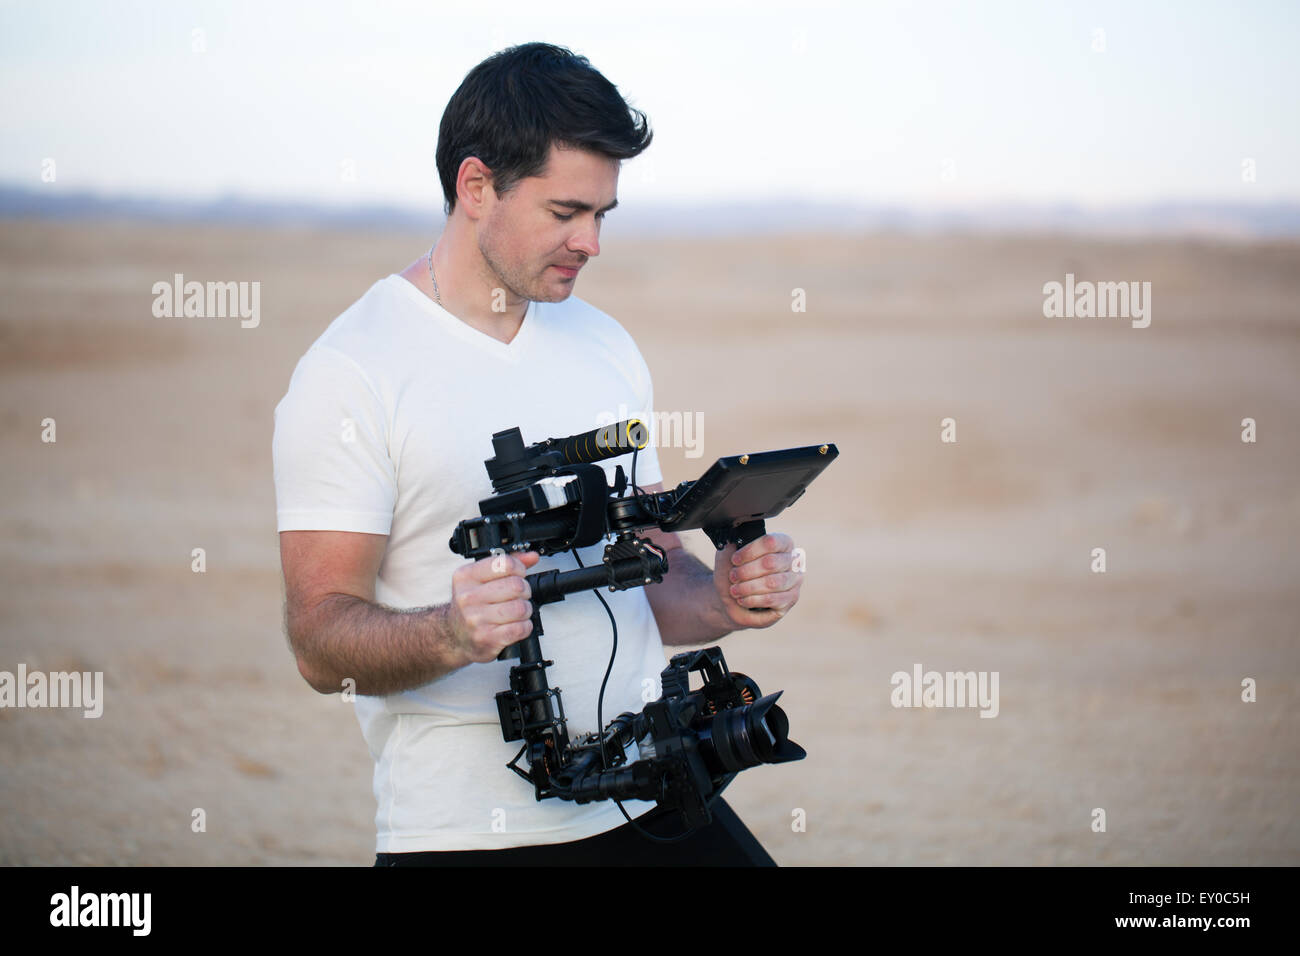 Young man using steadycam for shooting on beach - Stock Image